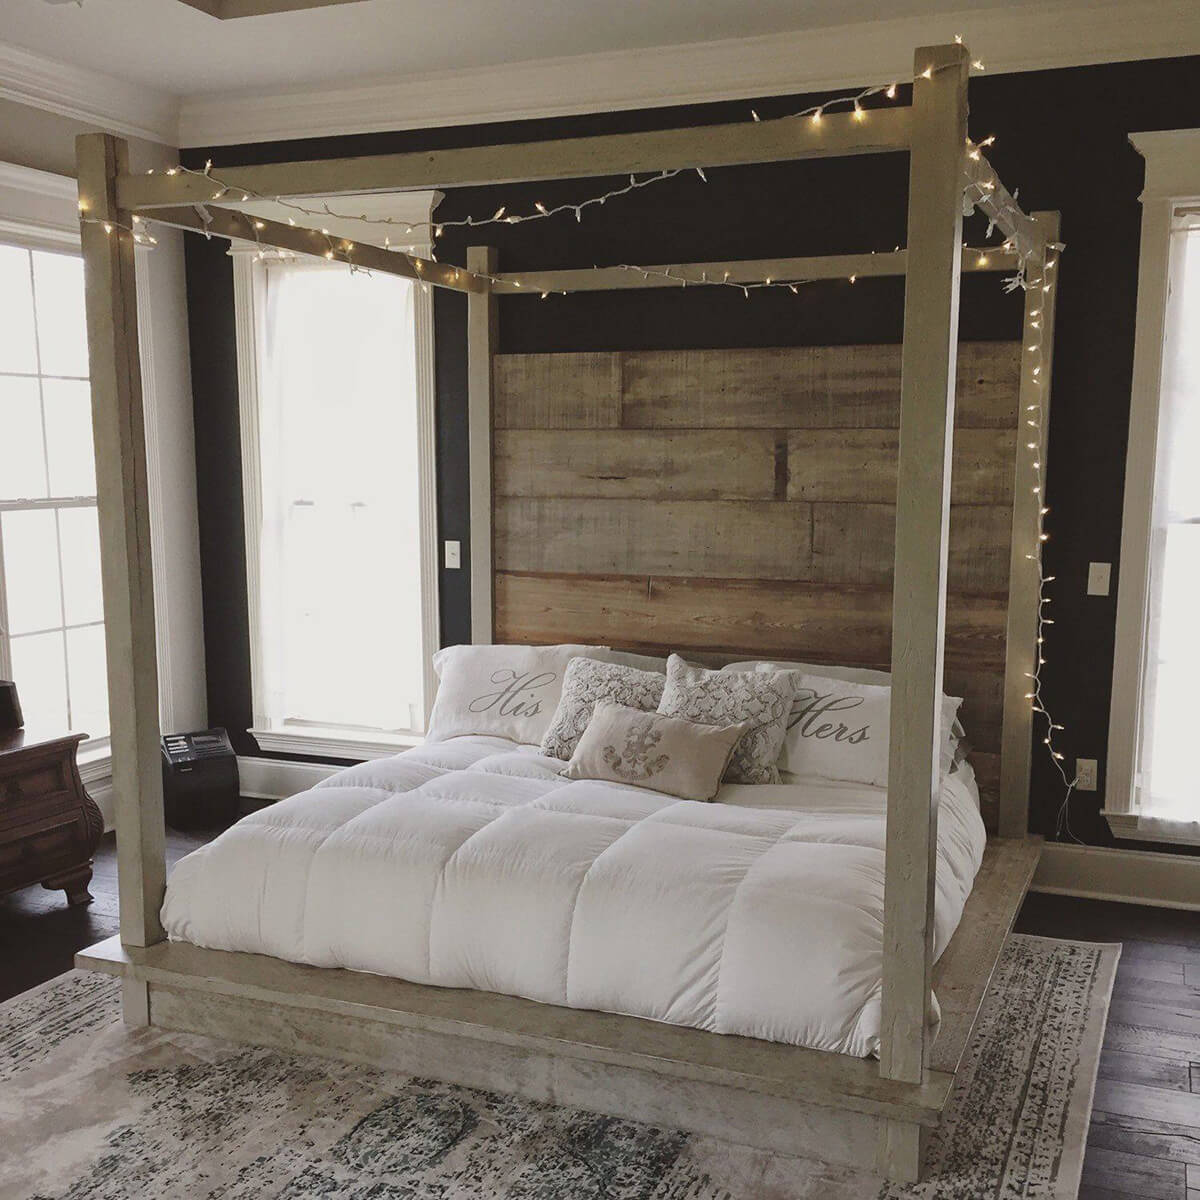 24 Best Canopy Bed Ideas And Designs For 2021